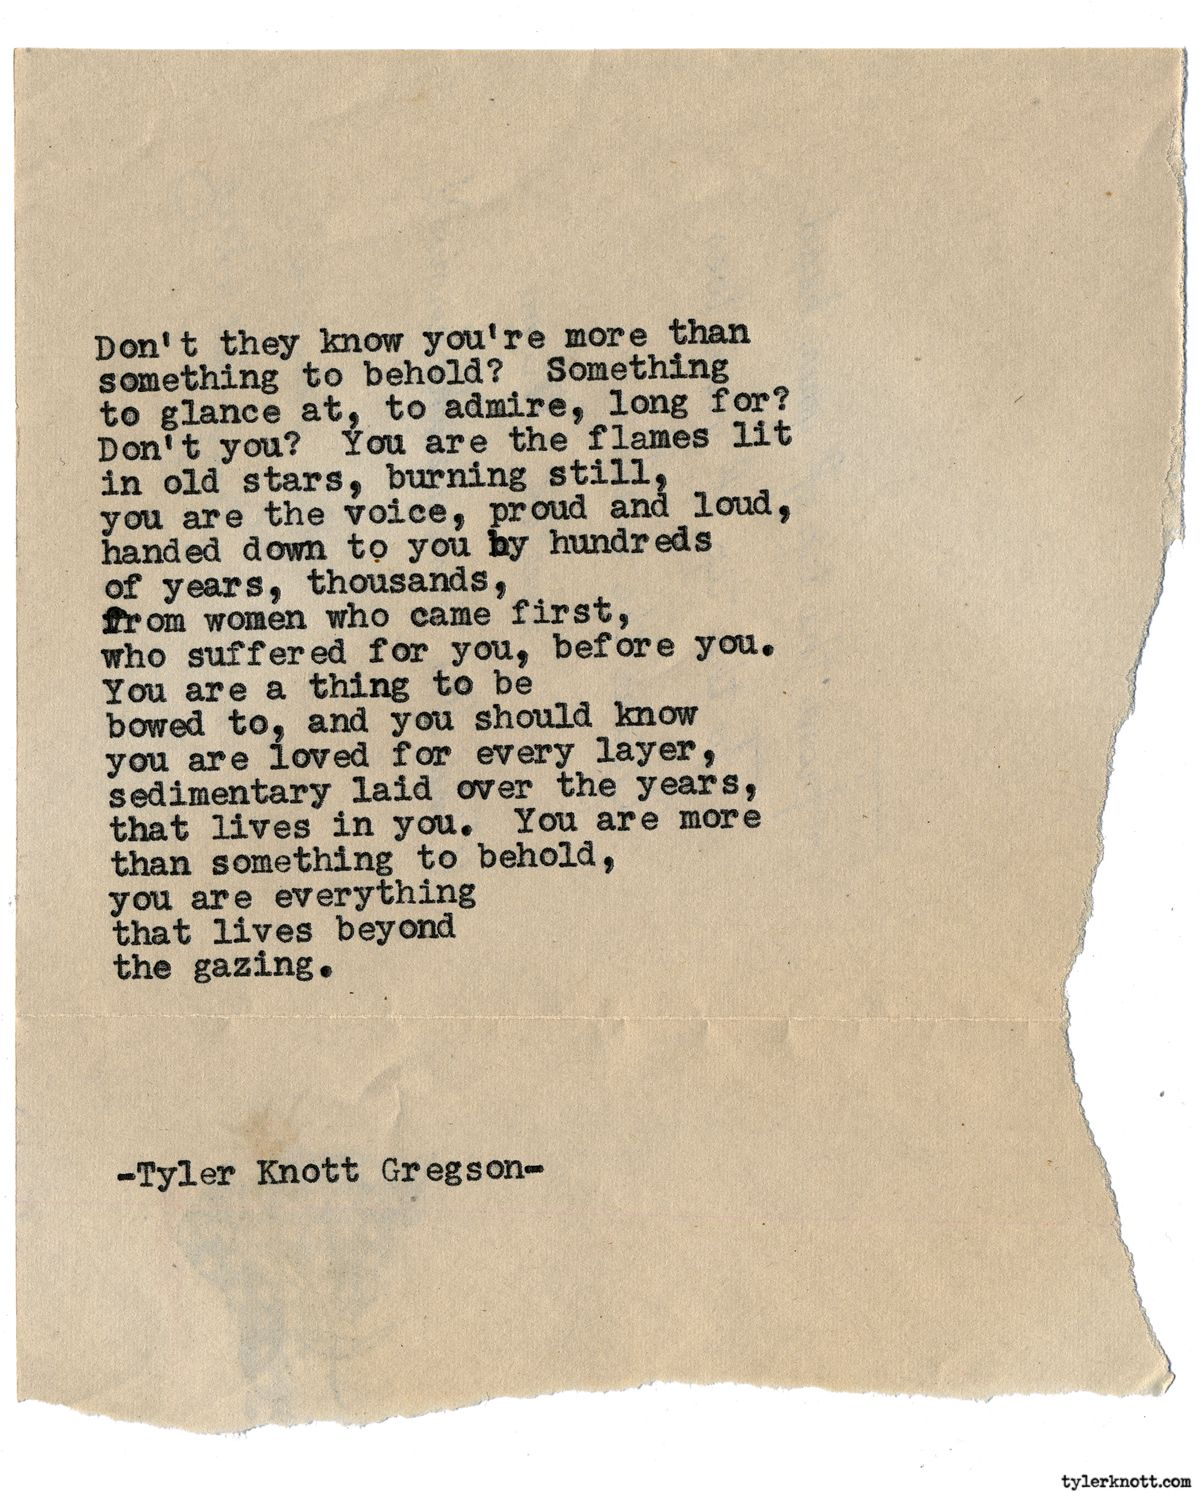 Typewriter Series 1578 By Tyler Knott Gregson Chasers Of The Light All The Words Are Yours Are Out Now With Images Tyler Knott Gregson